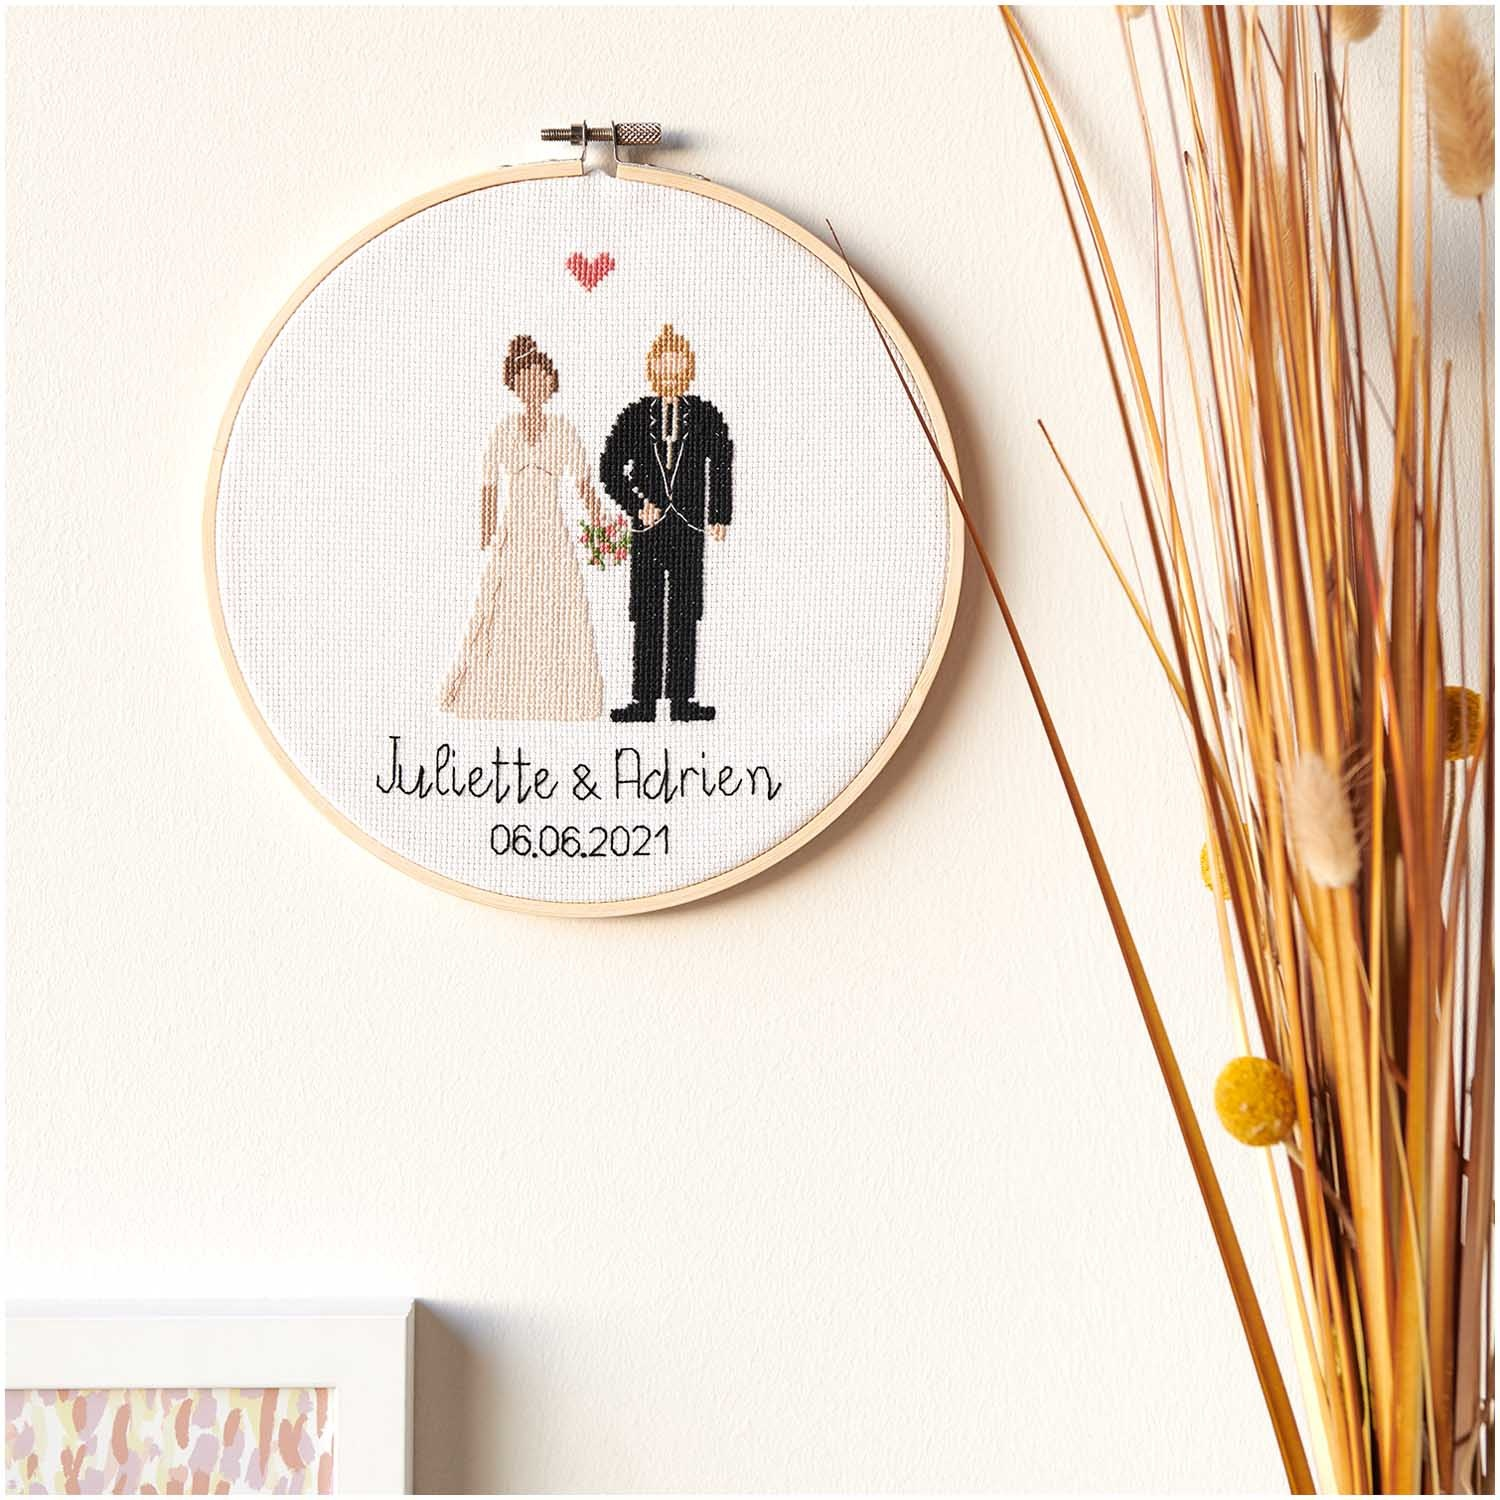 Rico NAY Embroidery kit Figurico Wedding, picture Ø 20 cm, counted cross stitch